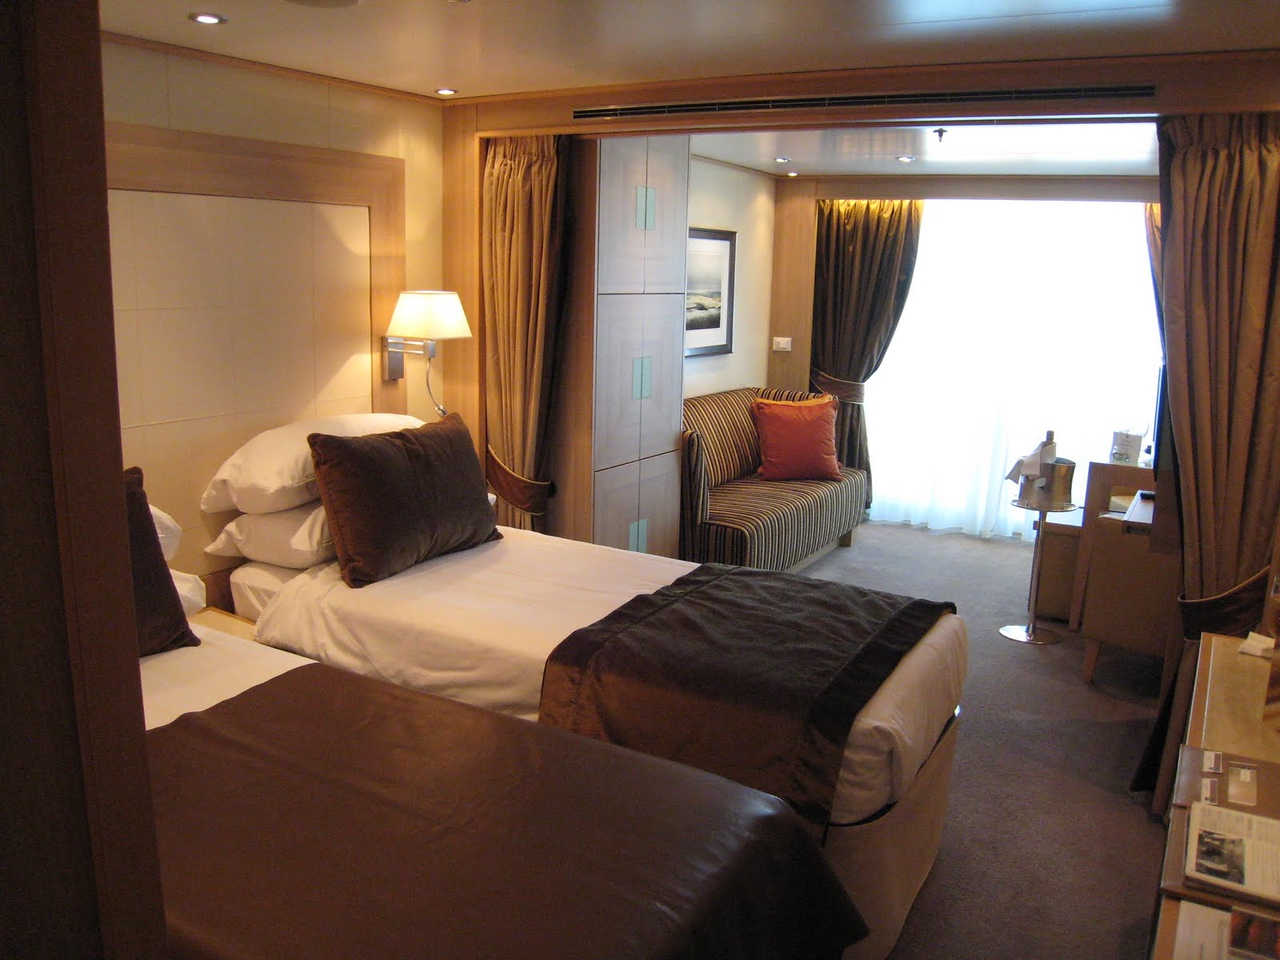 We have arrived!  A shot of the our room (609) on Seabourn Odyssey.